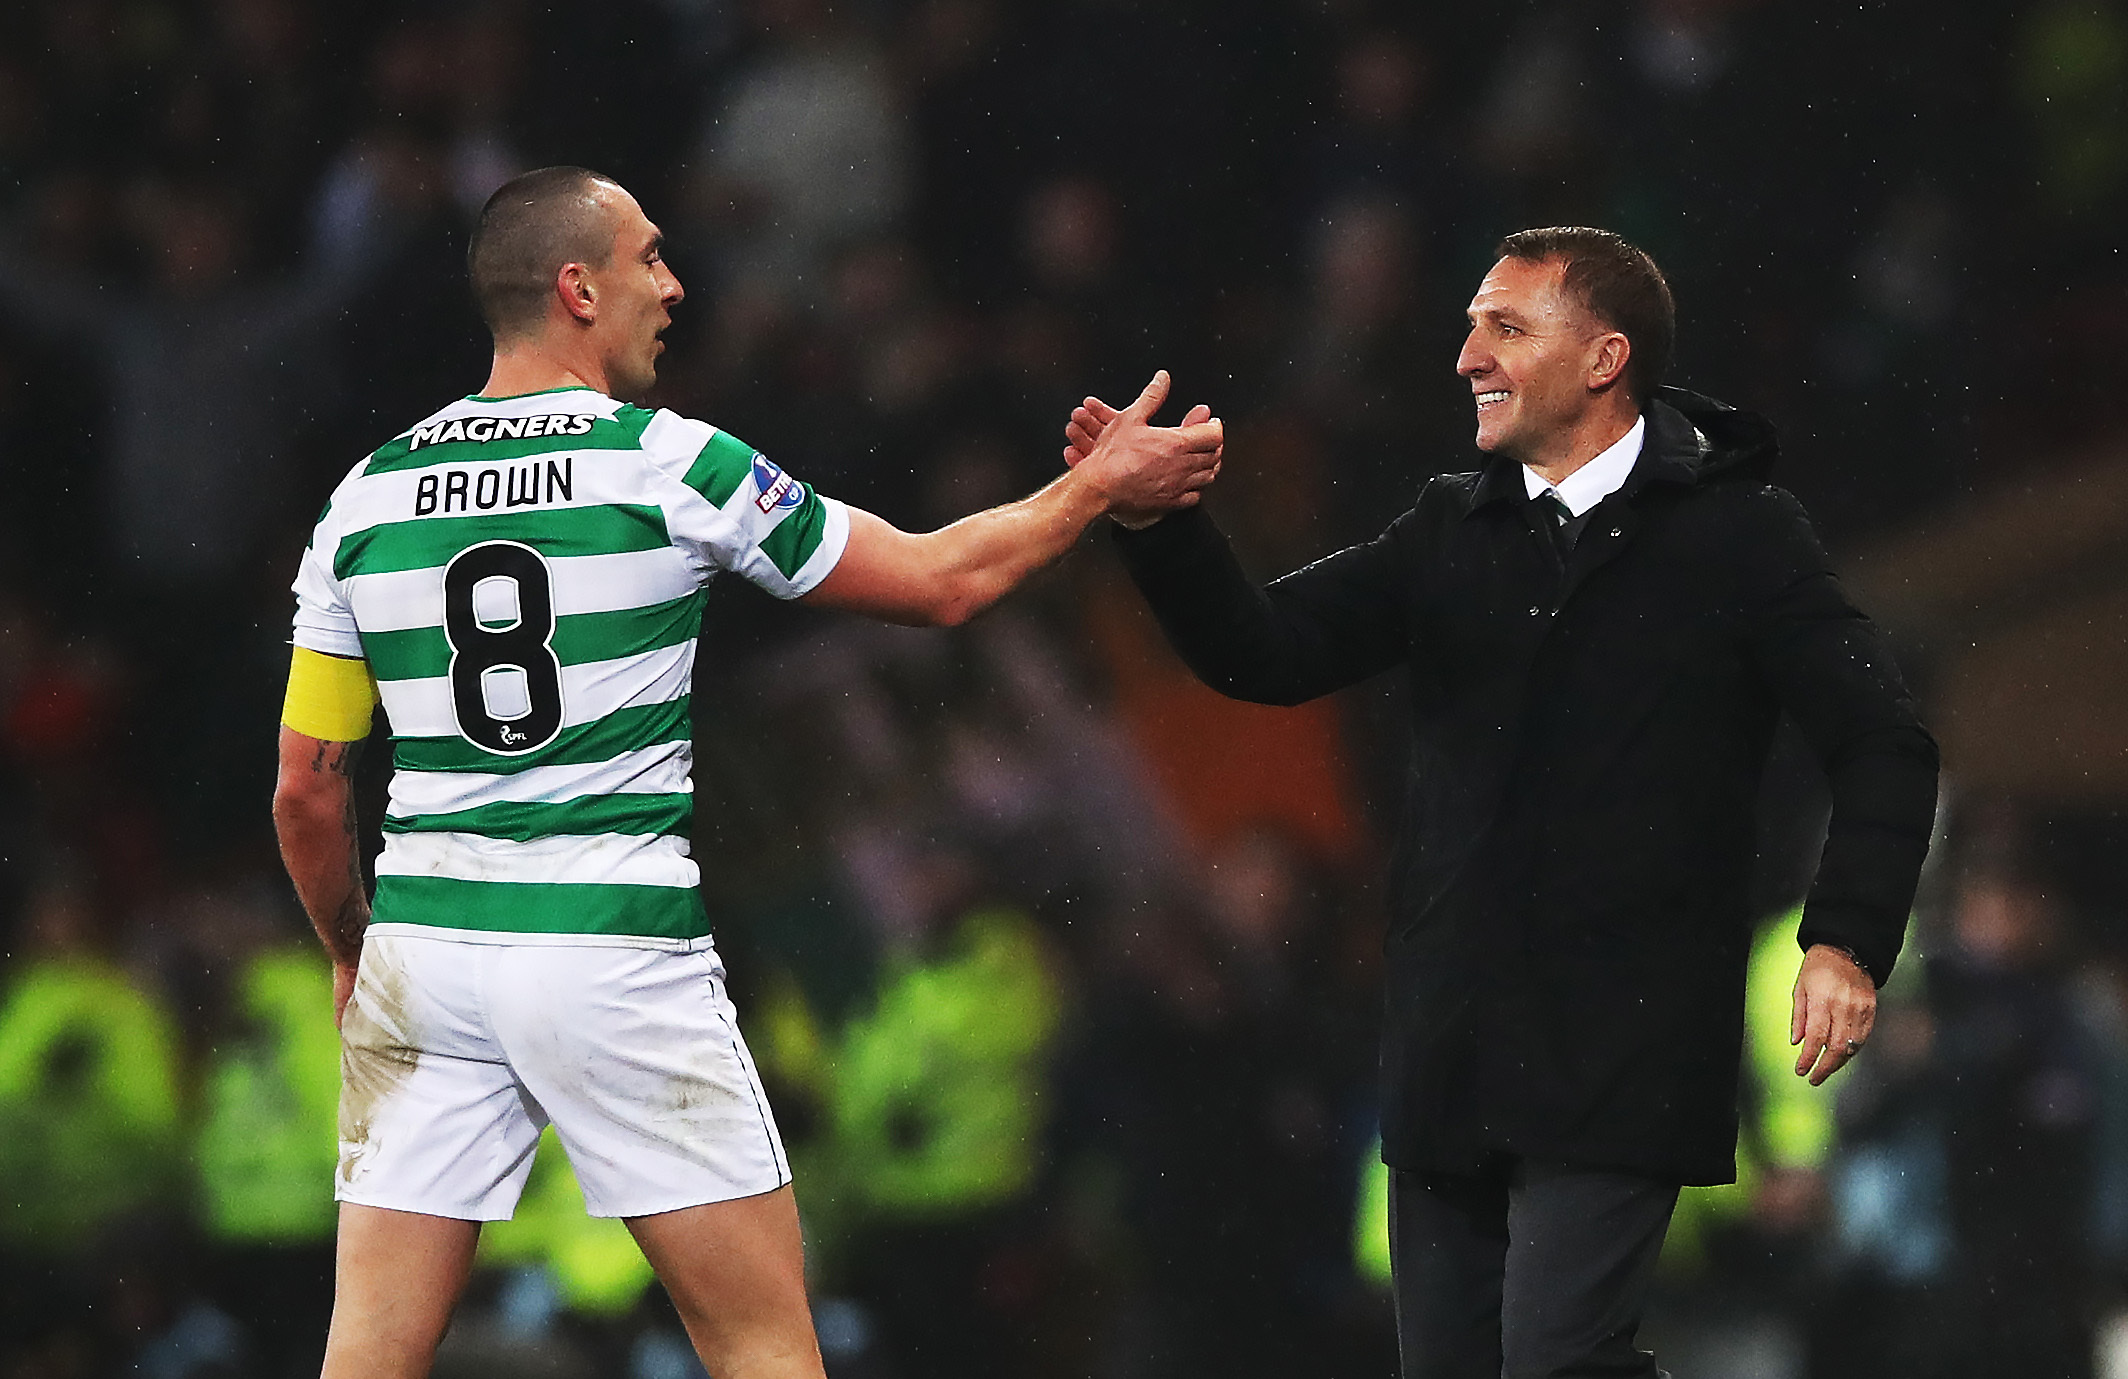 GLASGOW, SCOTLAND - DECEMBER 02: Scott Brown and Celtic manager Brendan Rodgers congratulate each other during the Betfred Cup Final between Celtic and Aberdeen at Hampden Park on December 2, 2018 in Glasgow, Scotland. (Photo by Ian MacNicol/Getty Images)